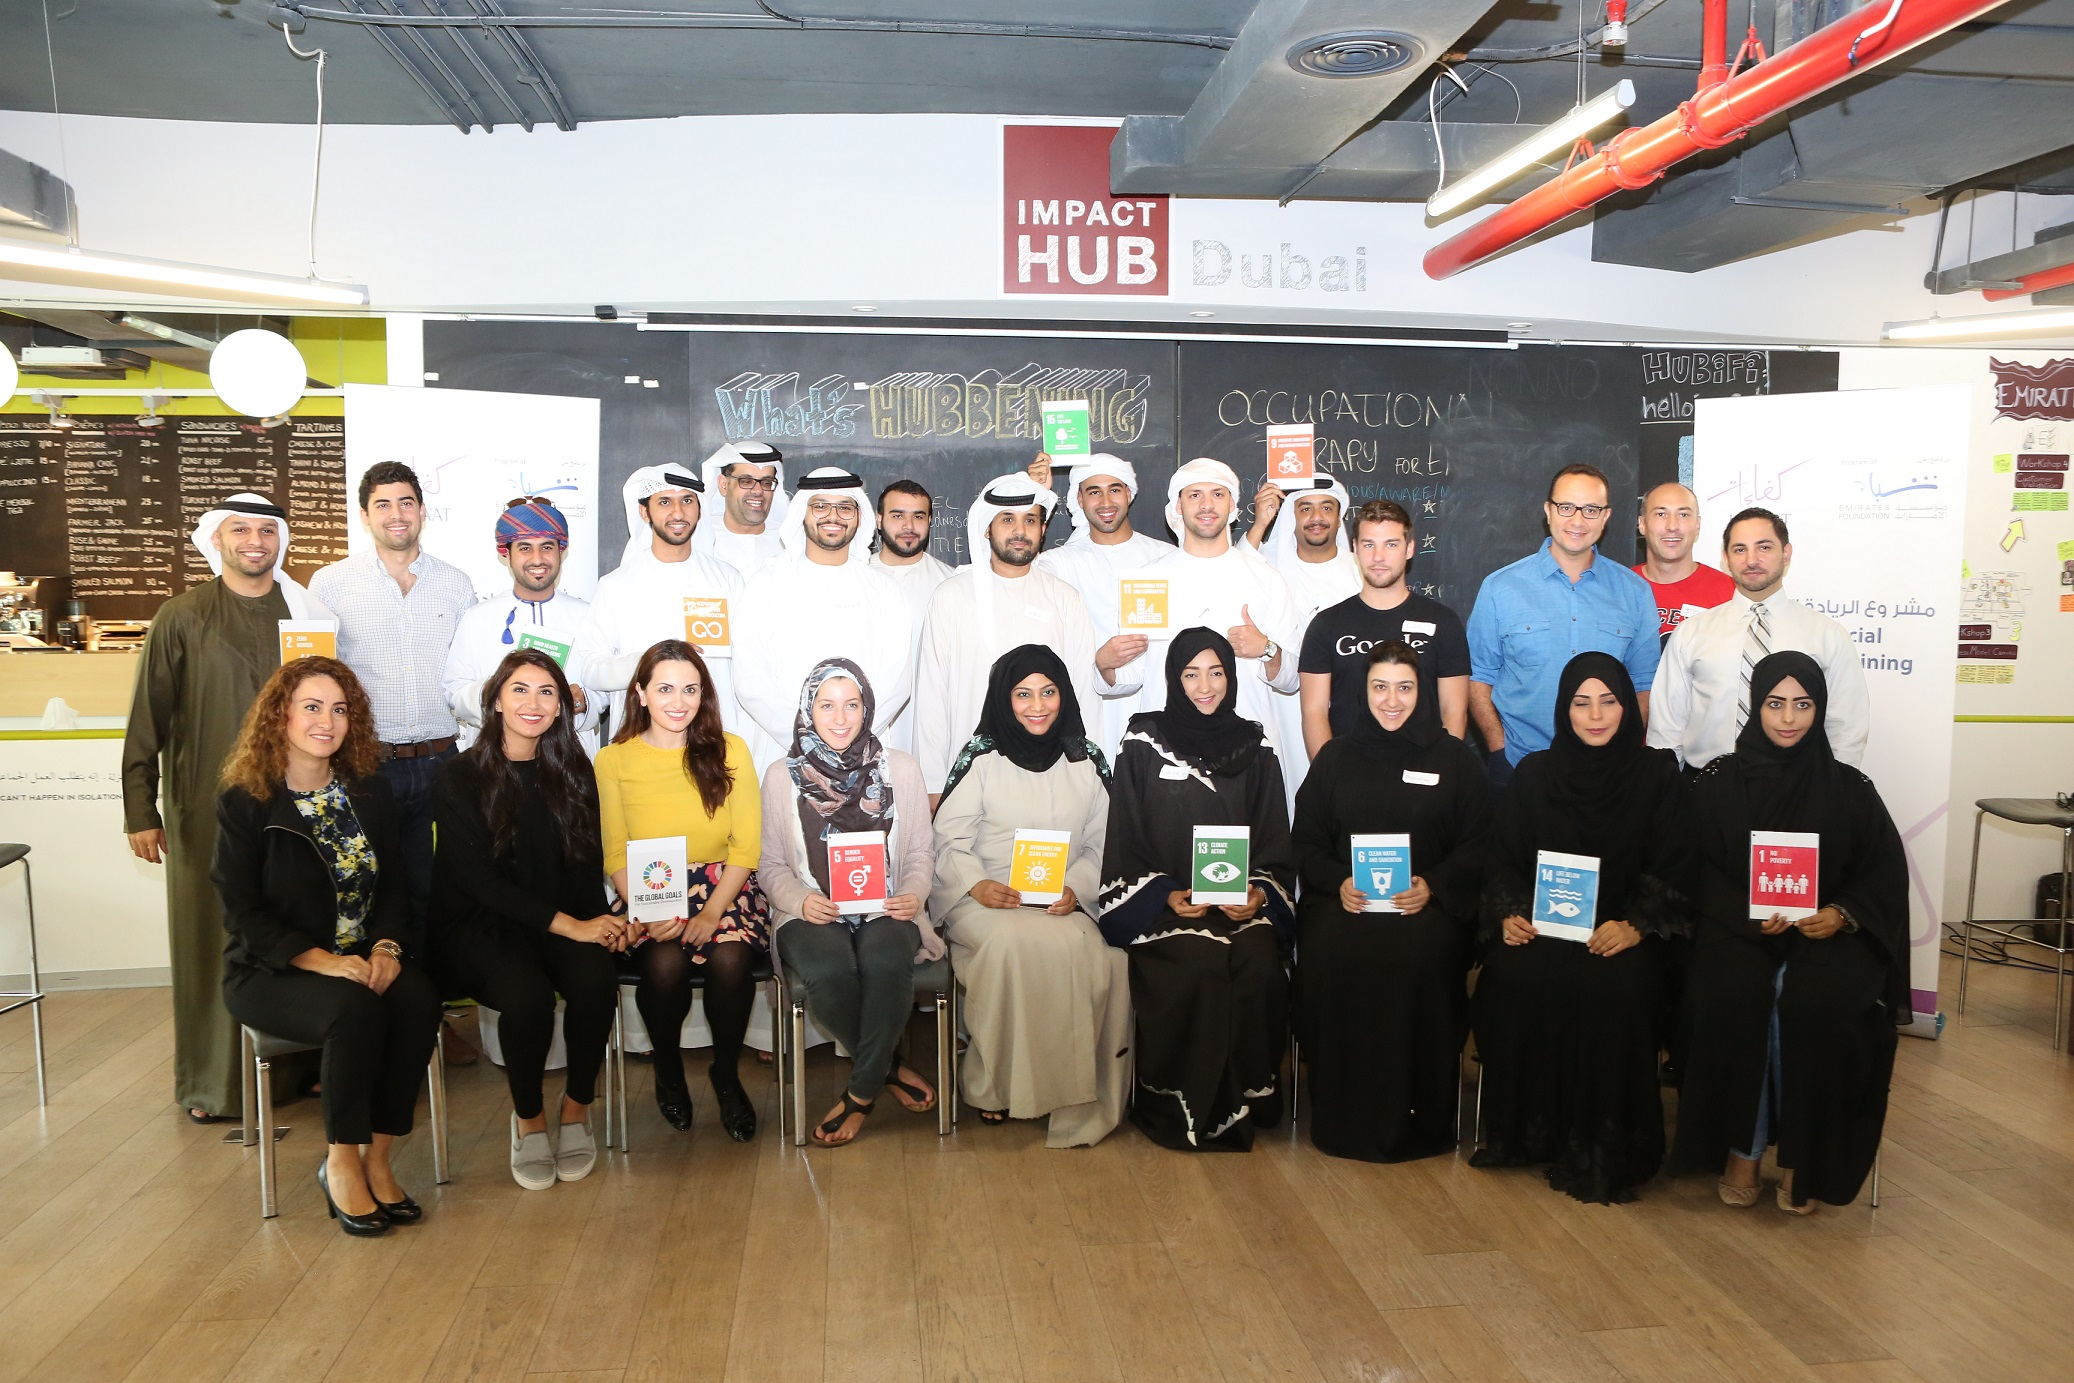 20 New UAE Social Enterprise Projects to Compete in Emirates